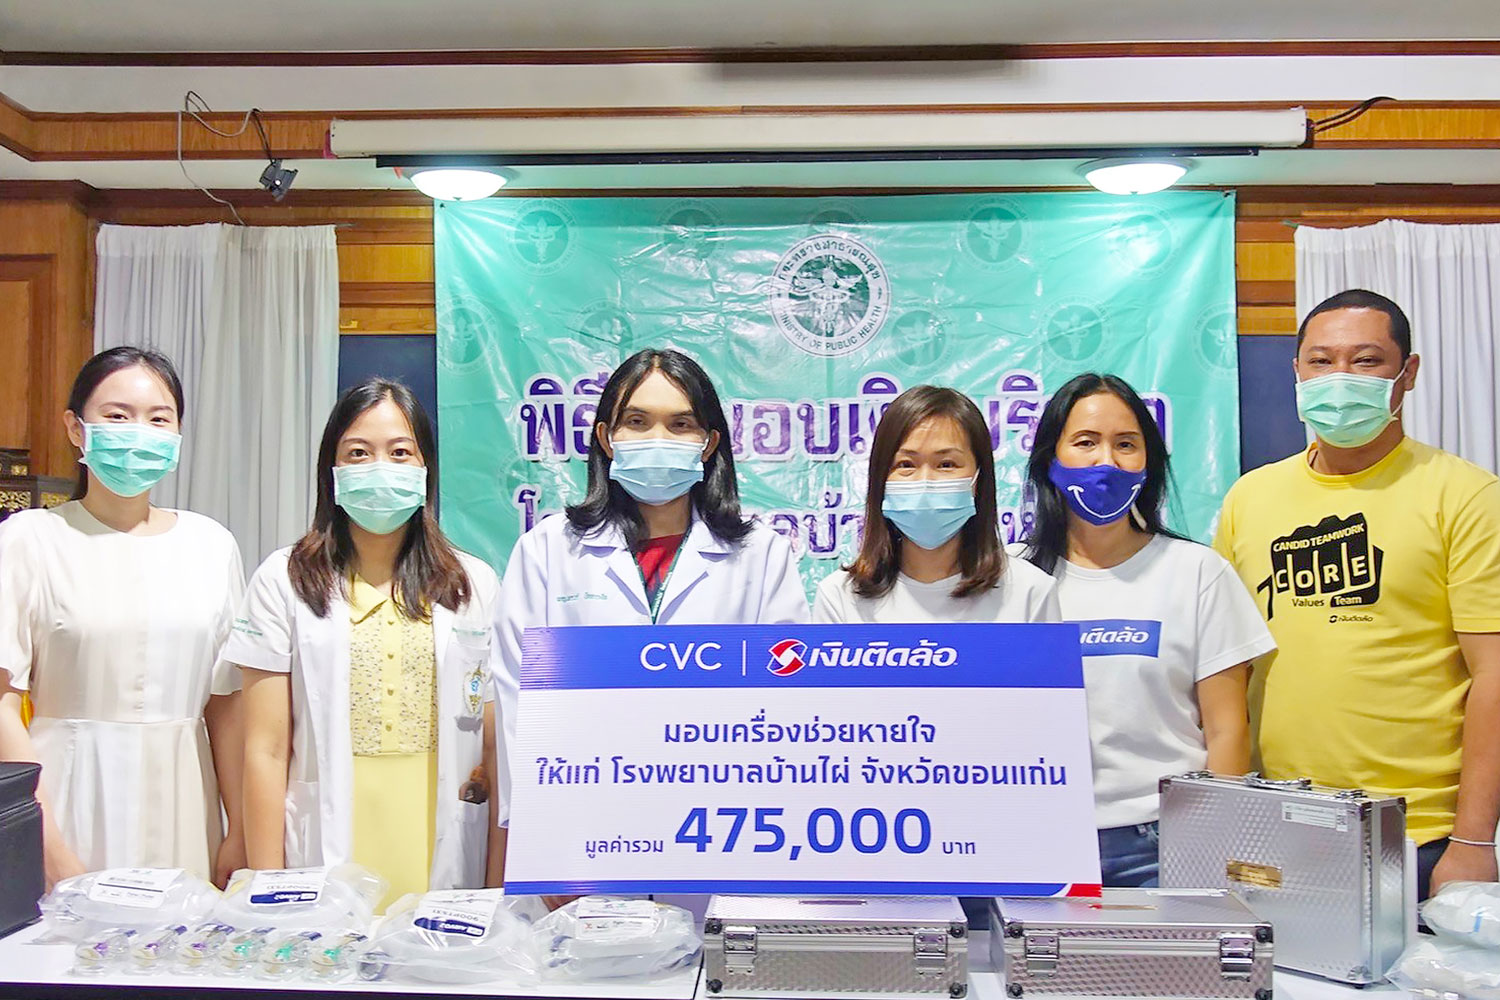 Ngern Tid Lor  in collaboration with CVC delivers breaths for many lives at Banphai Hospital, Khon Kaen